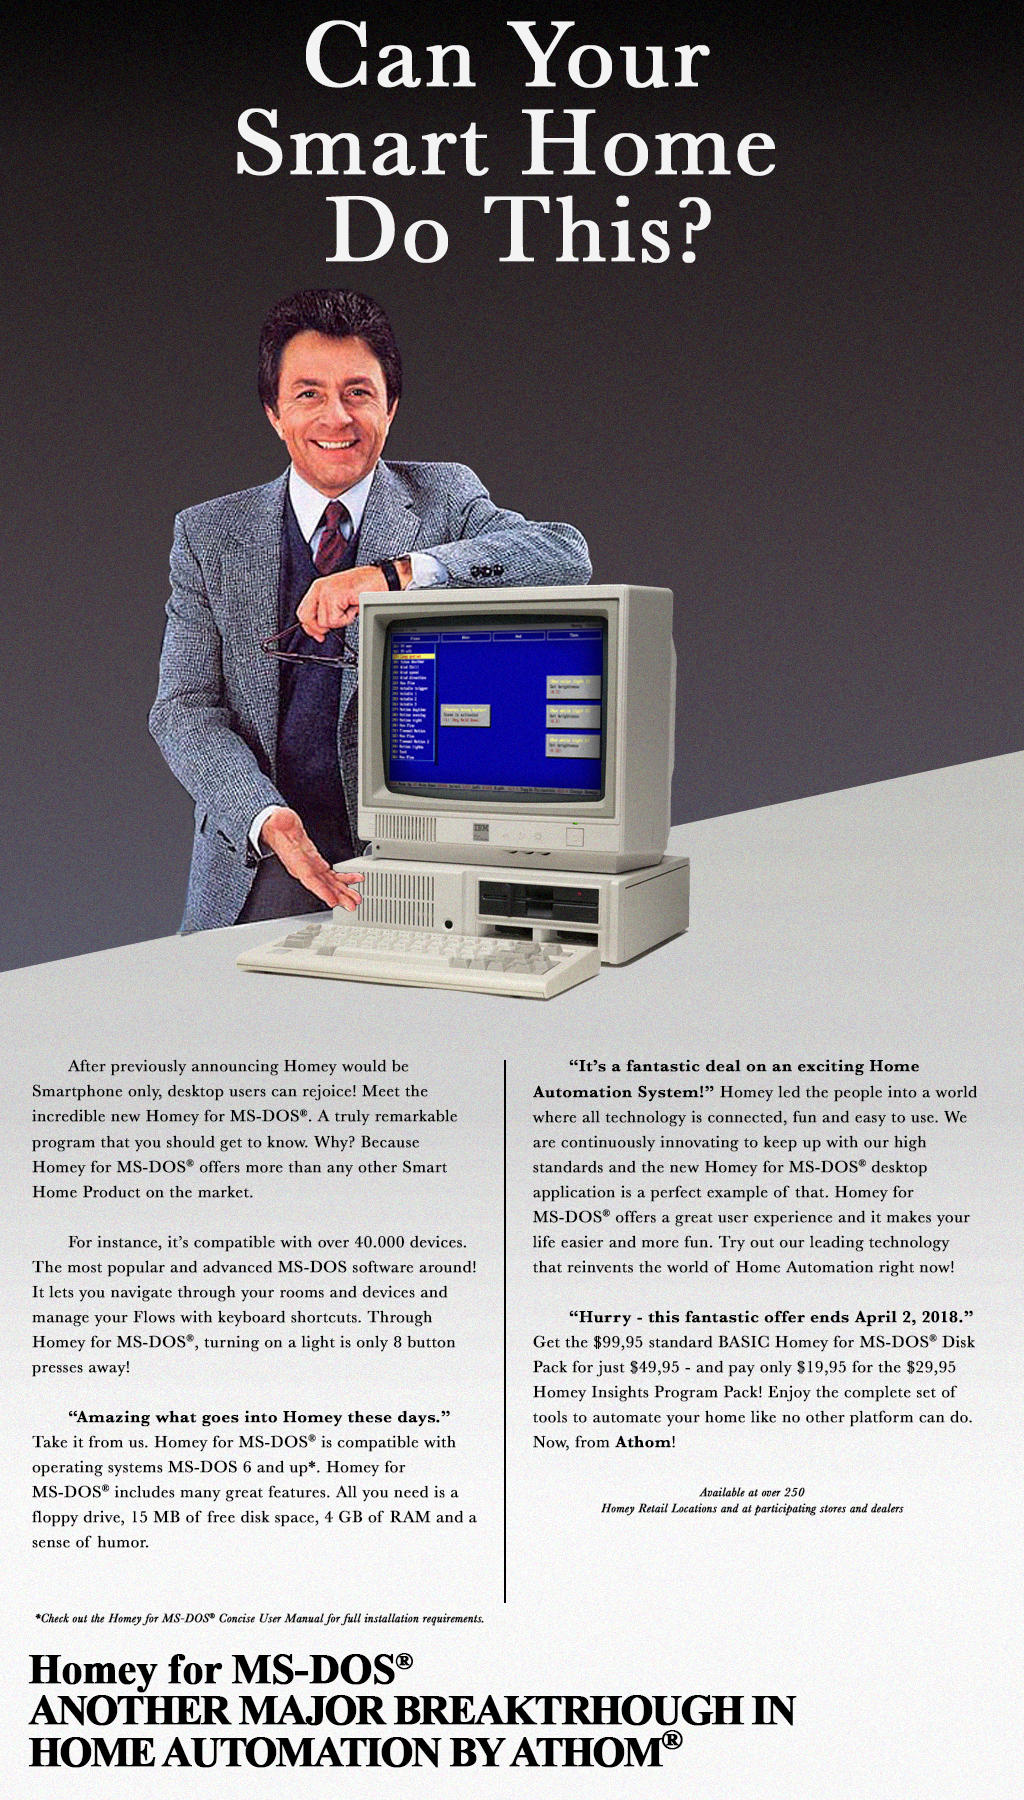 Homey for MS-DOS® — The Smart Home of the future on yesterday's machine